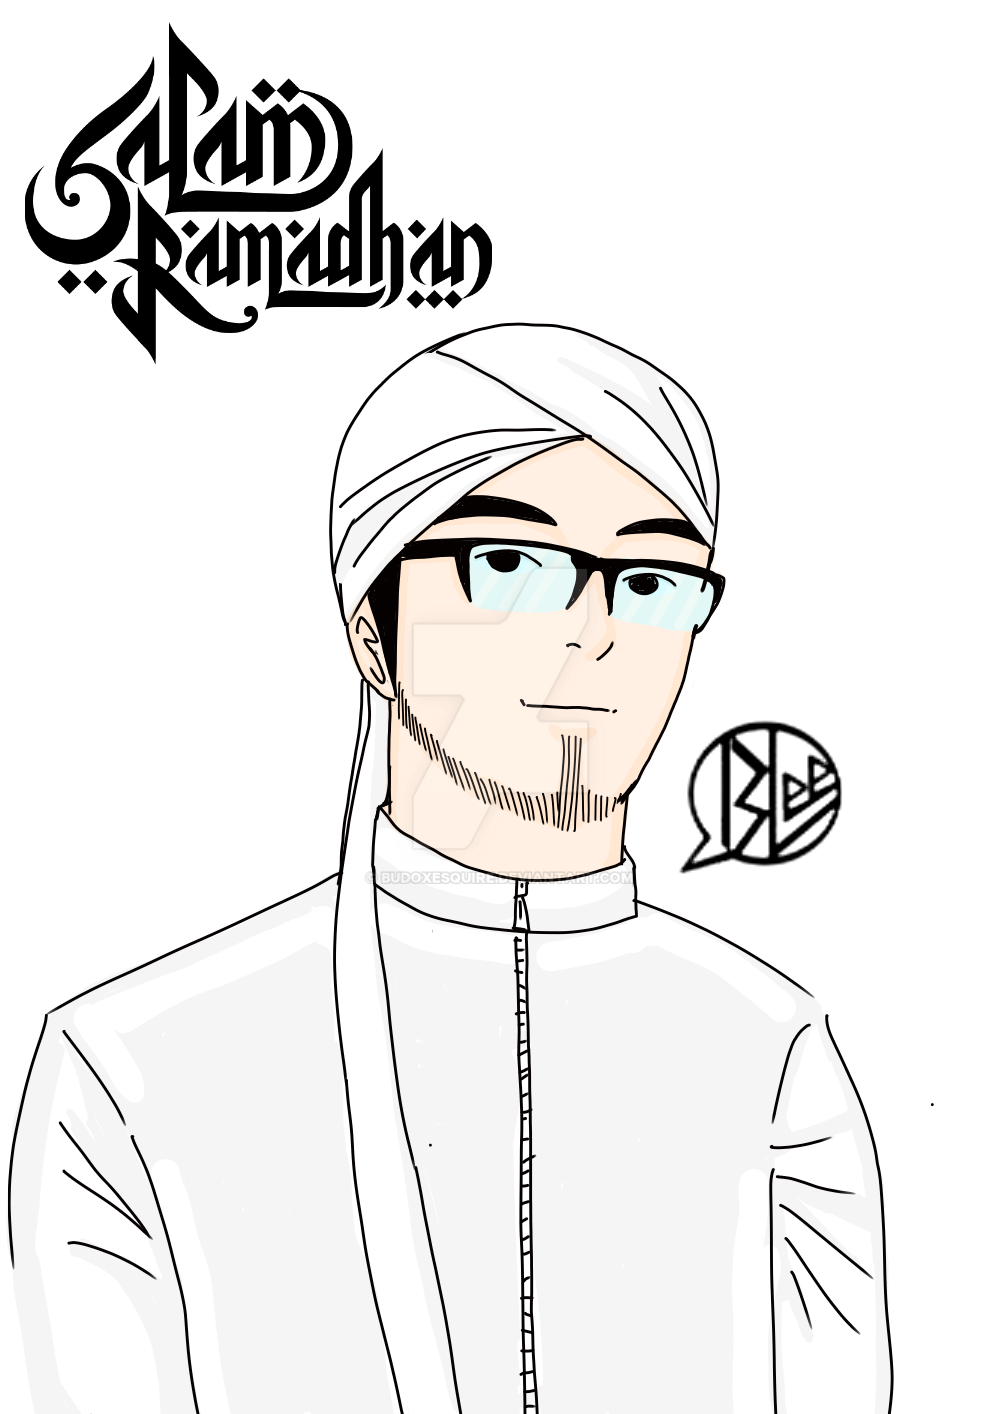 salam ramadhan 2016 by budoxesquire